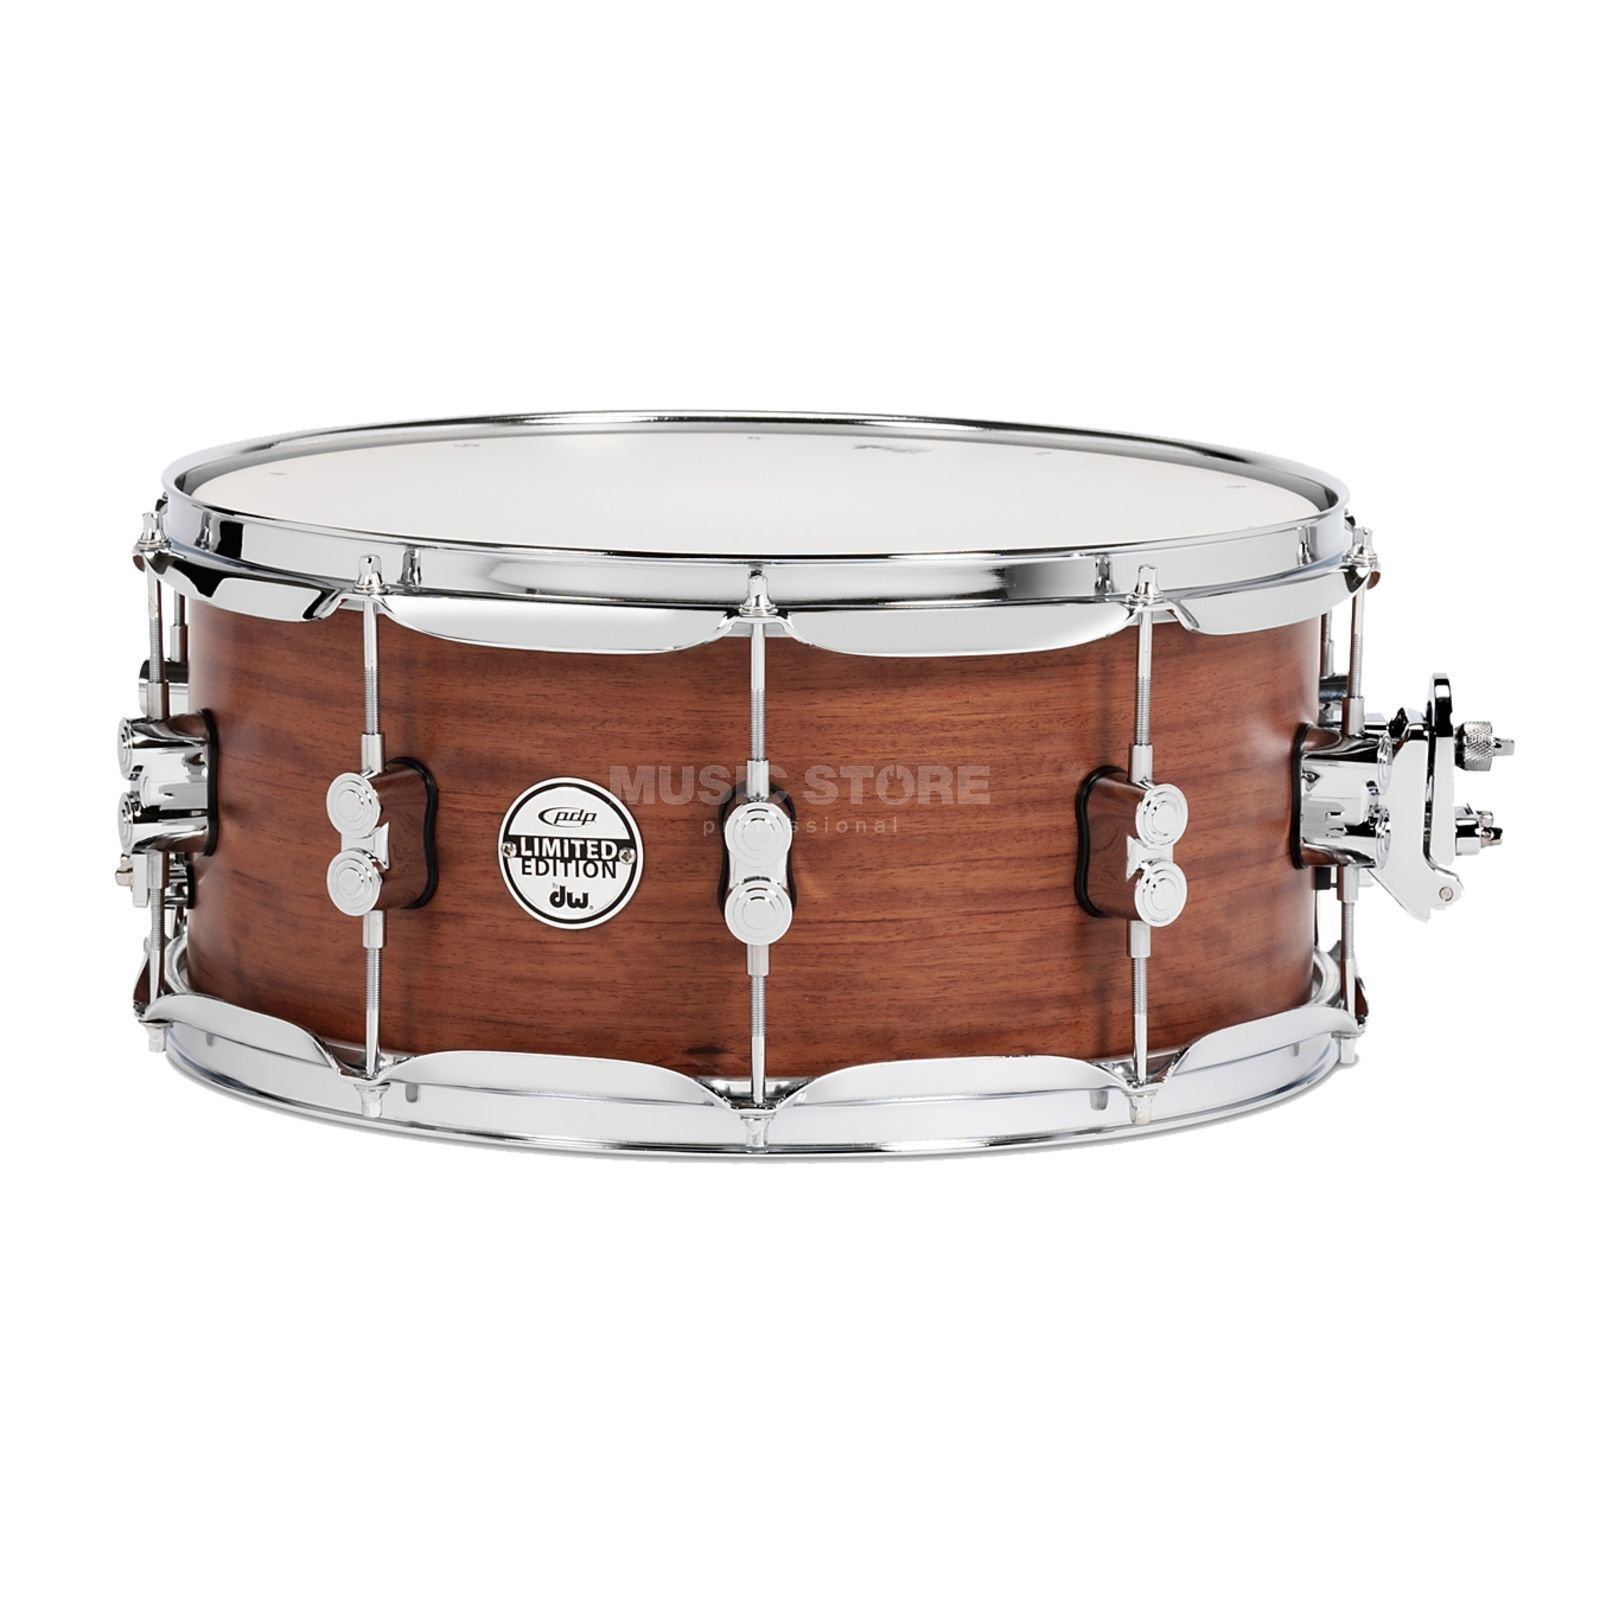 "Drum Workshop PDP Satin Oil Snare 14""x6,5"", Bubinga/Maple/Bubinga Produktbillede"